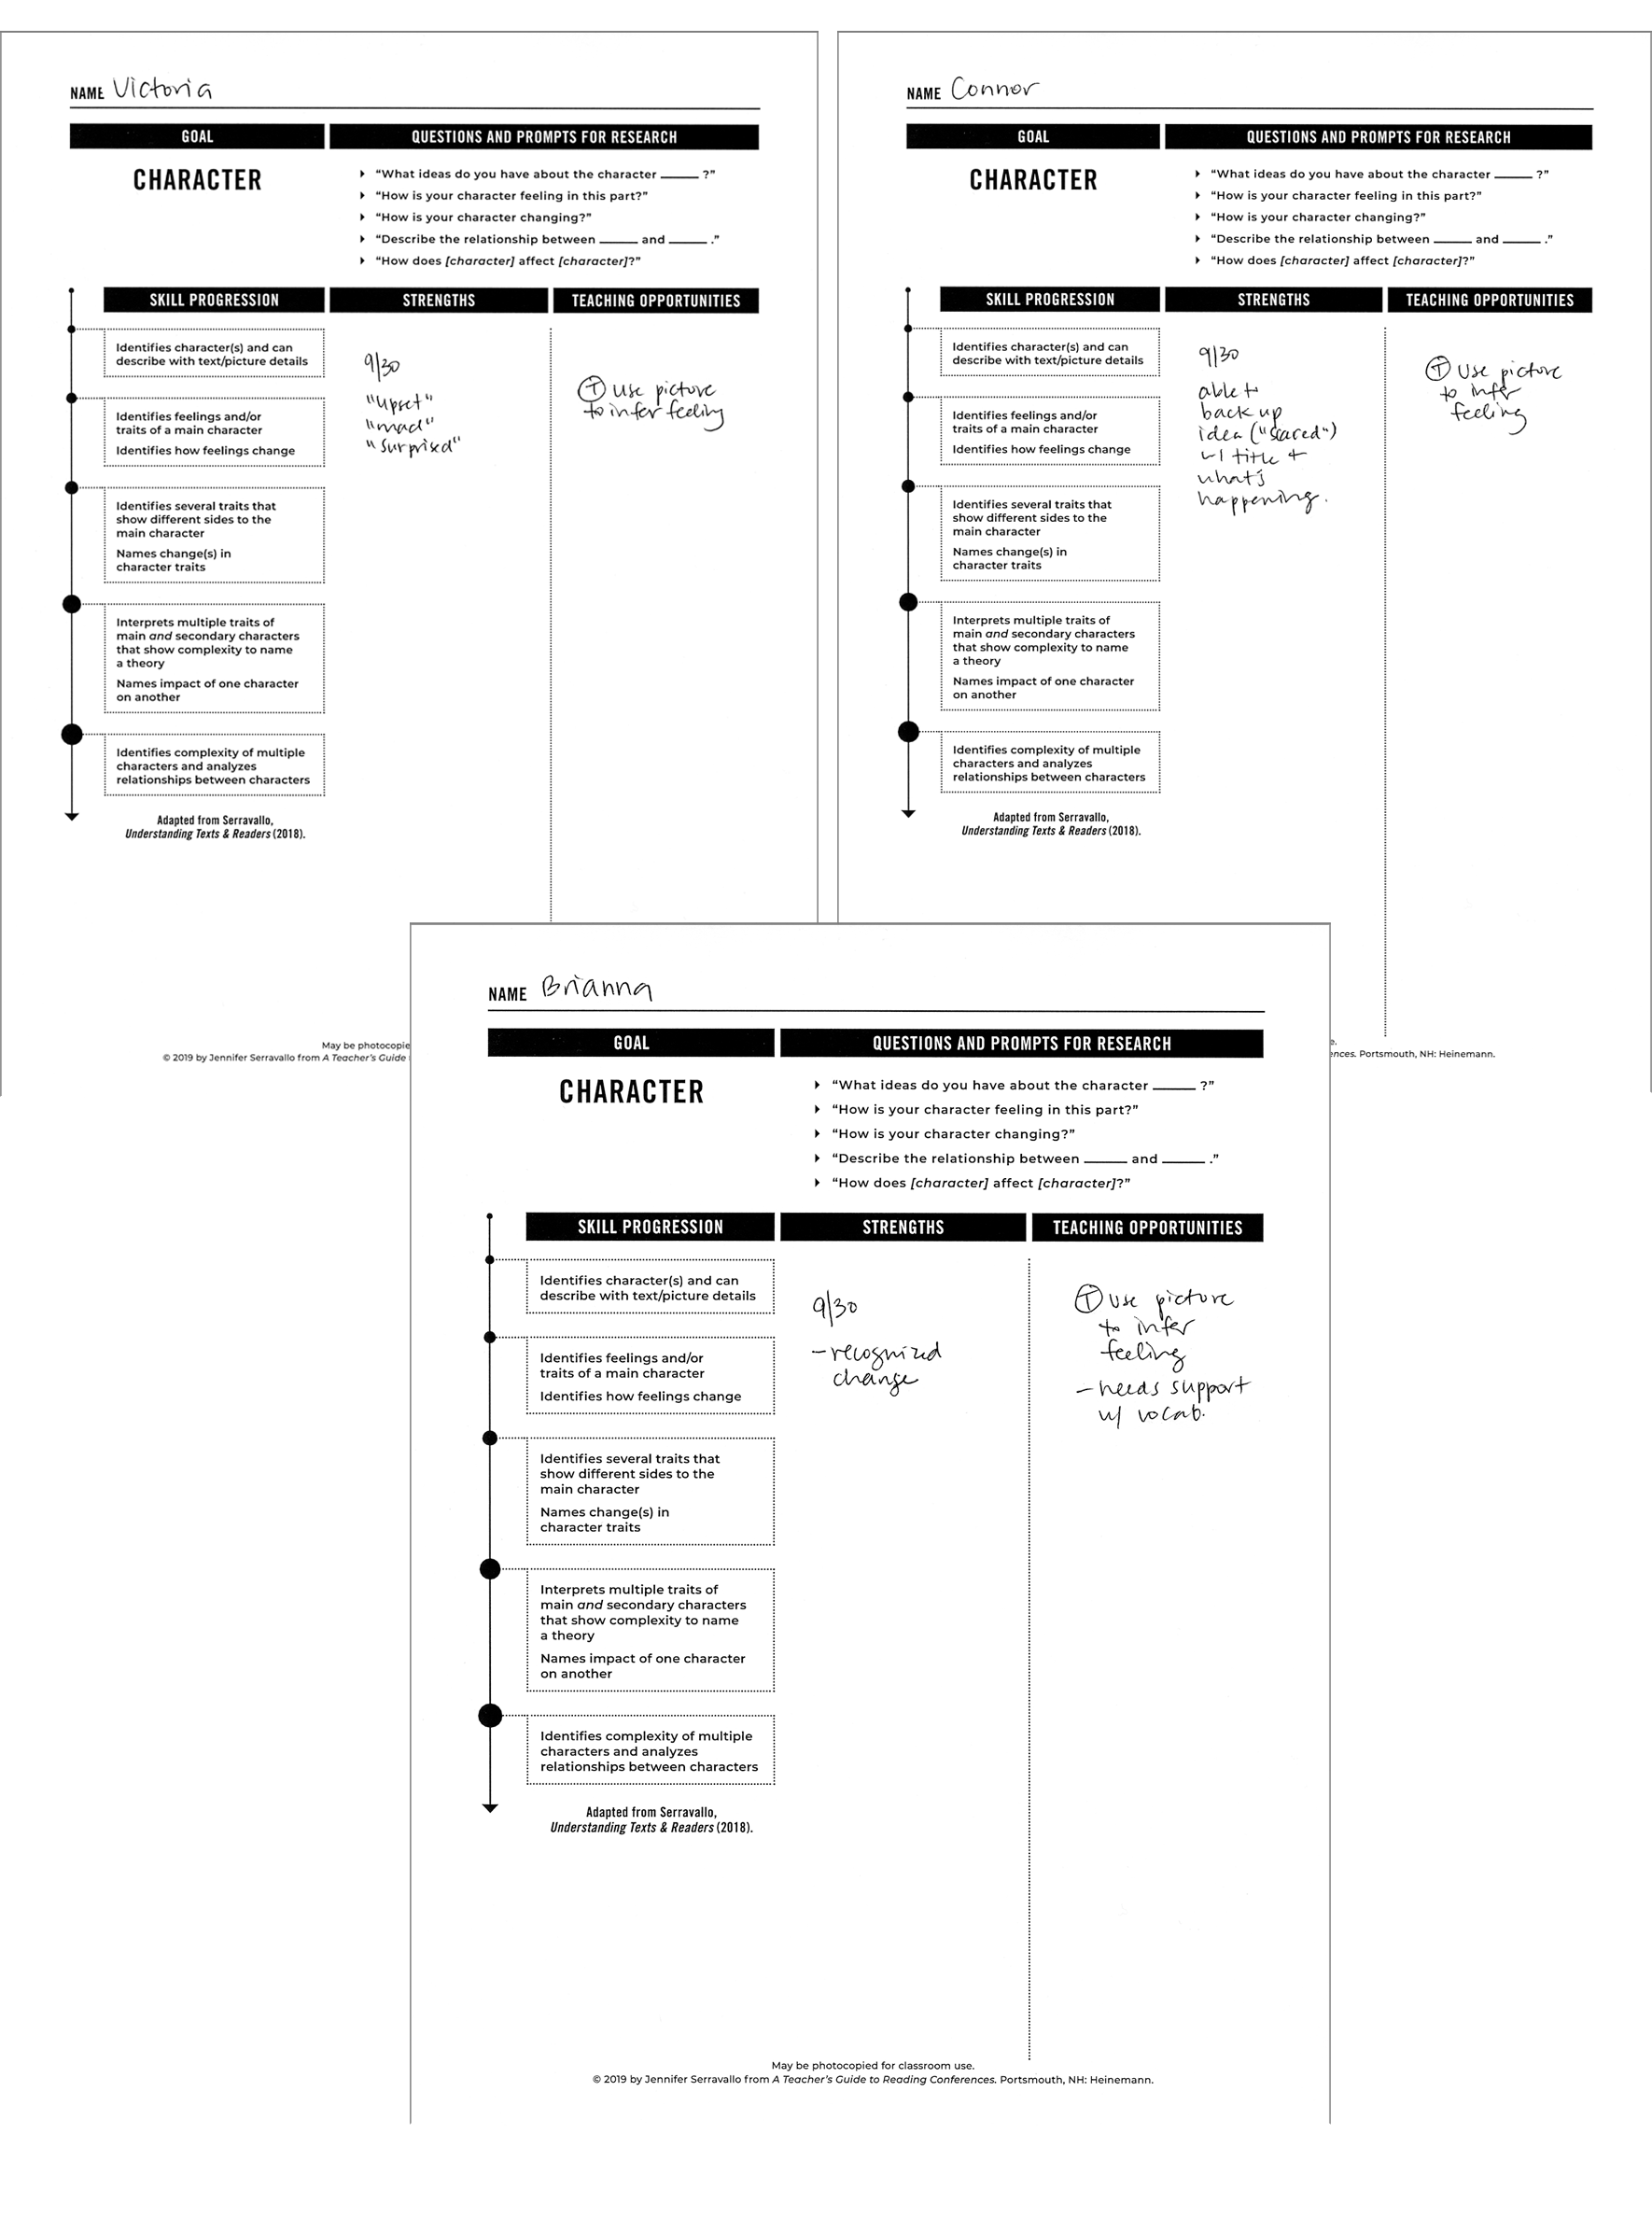 more conference sheets